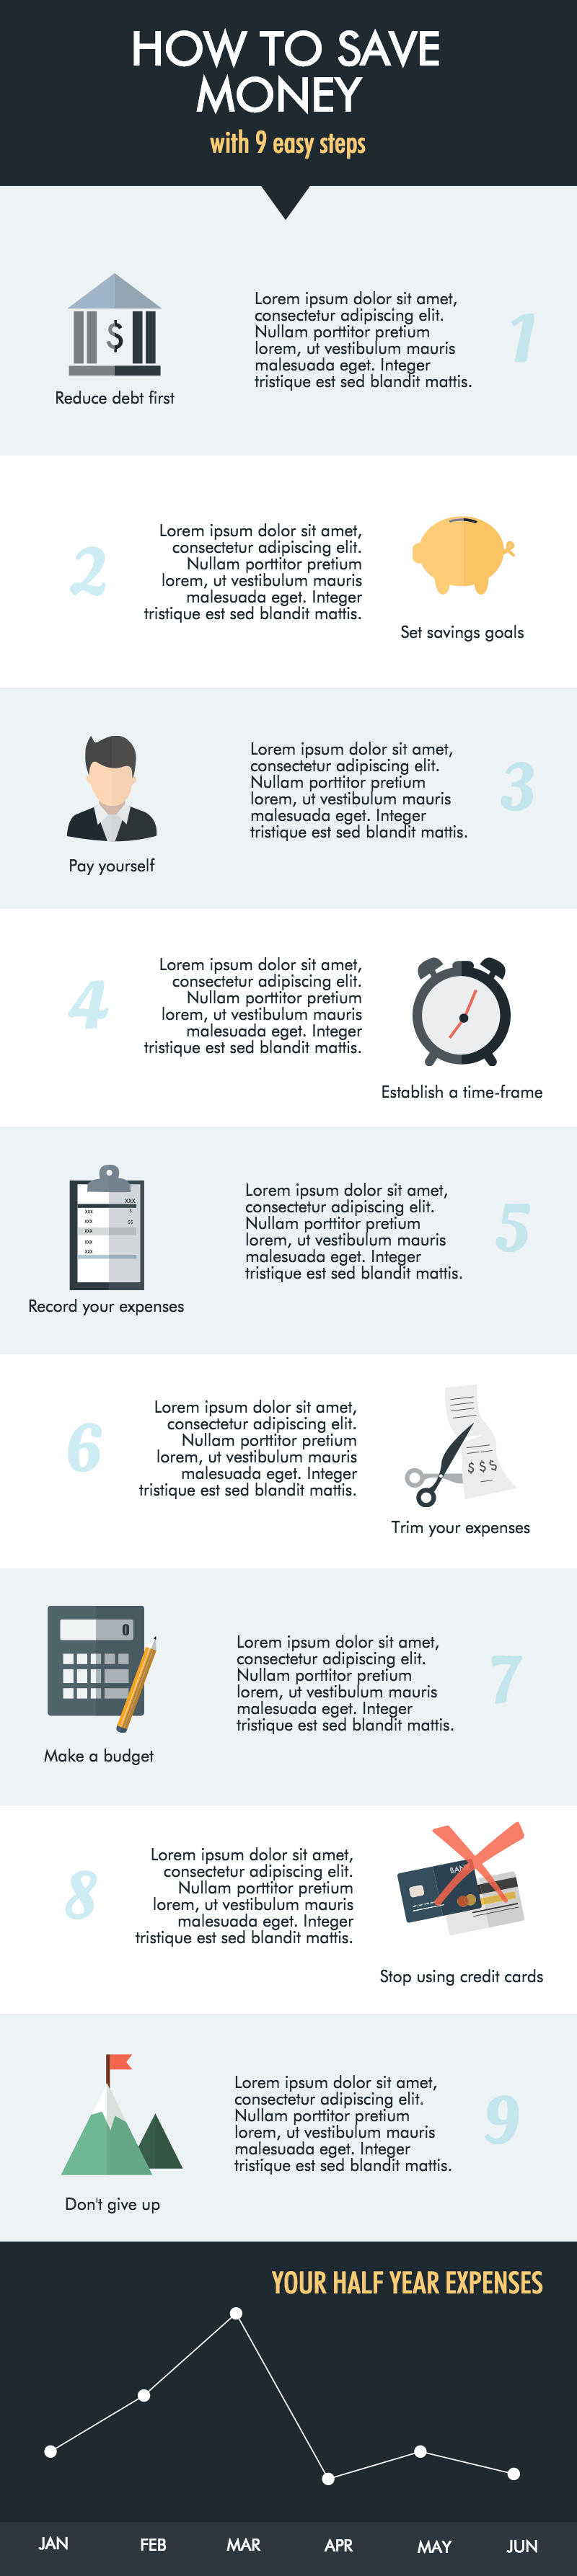 untitled-infographic-5-8094019